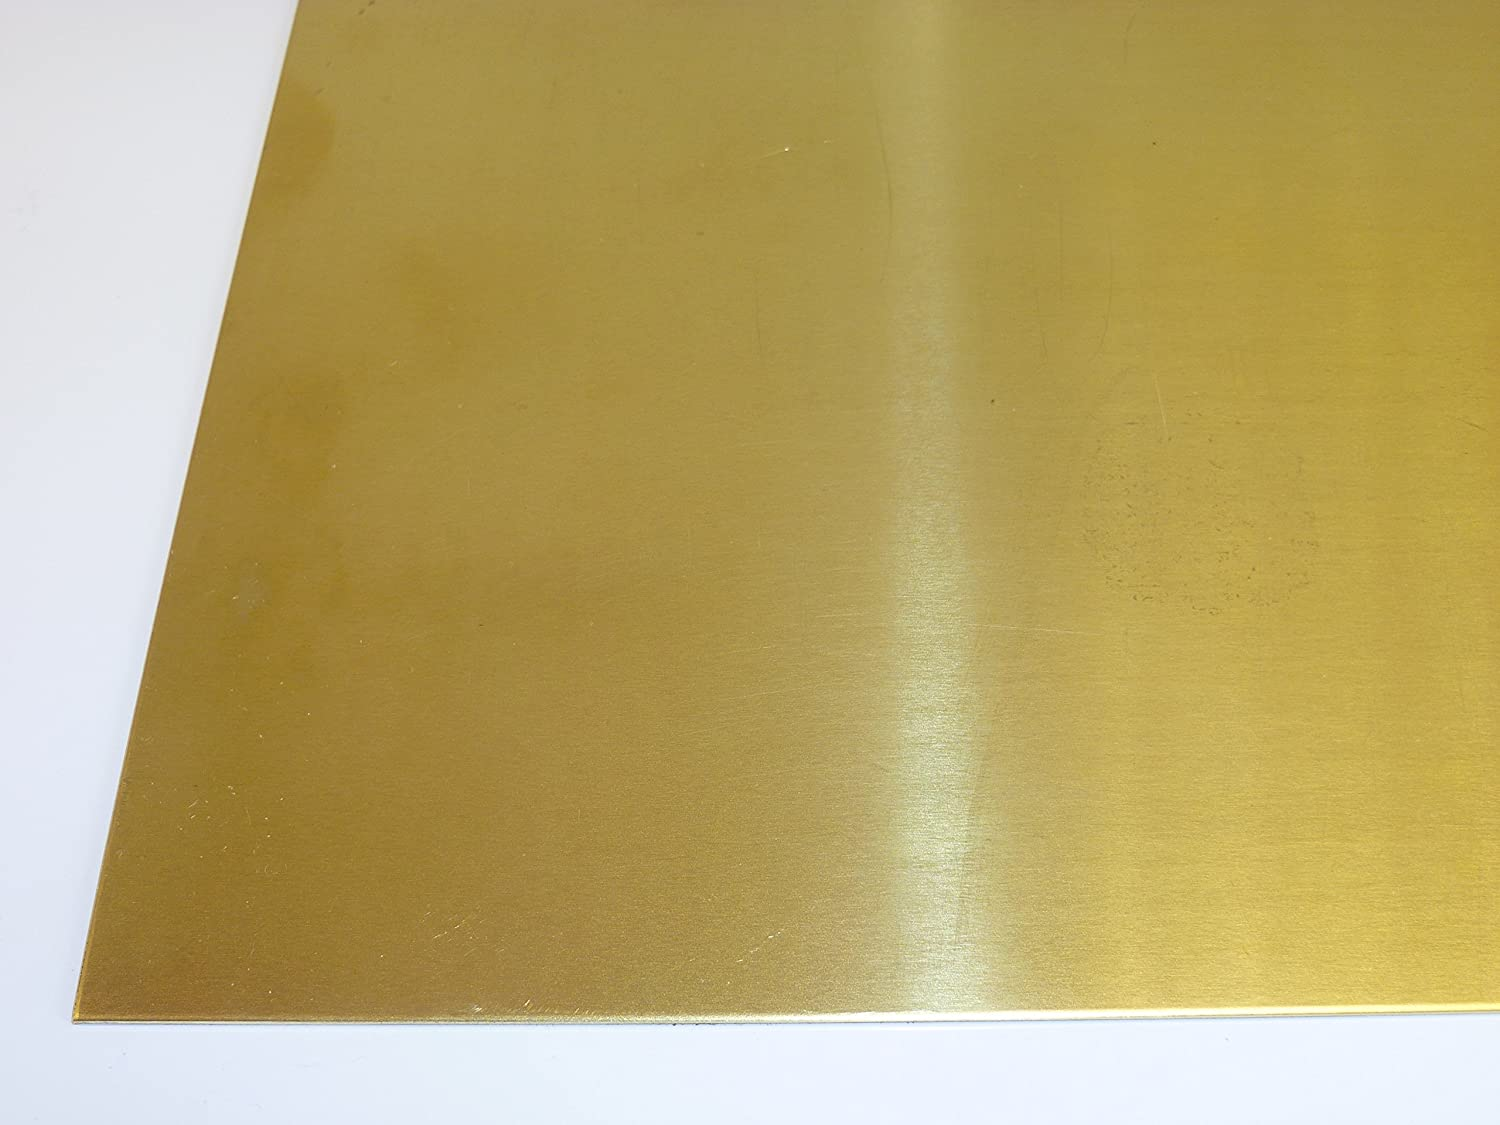 CUZN37 B /& T Metal Brass 1.0/ mm Thick MS63/  Blank Blank Cut Surface